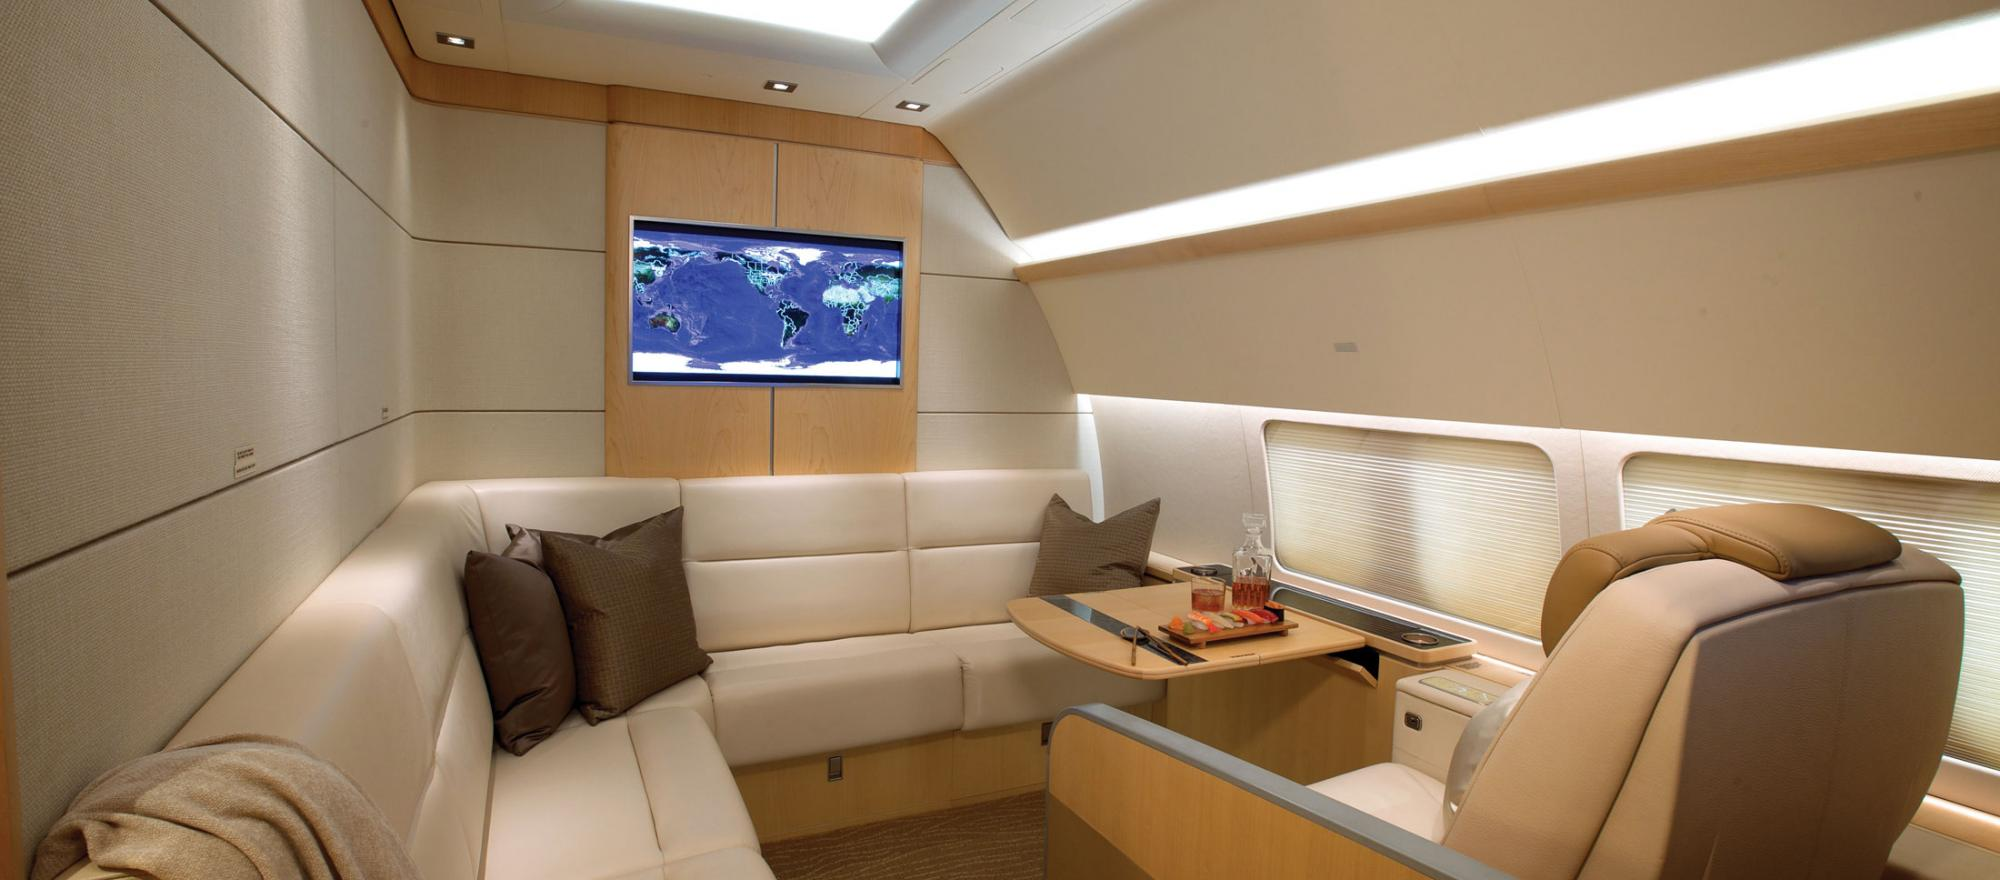 Luxury interior of a Boeing BBJ with pod seats.